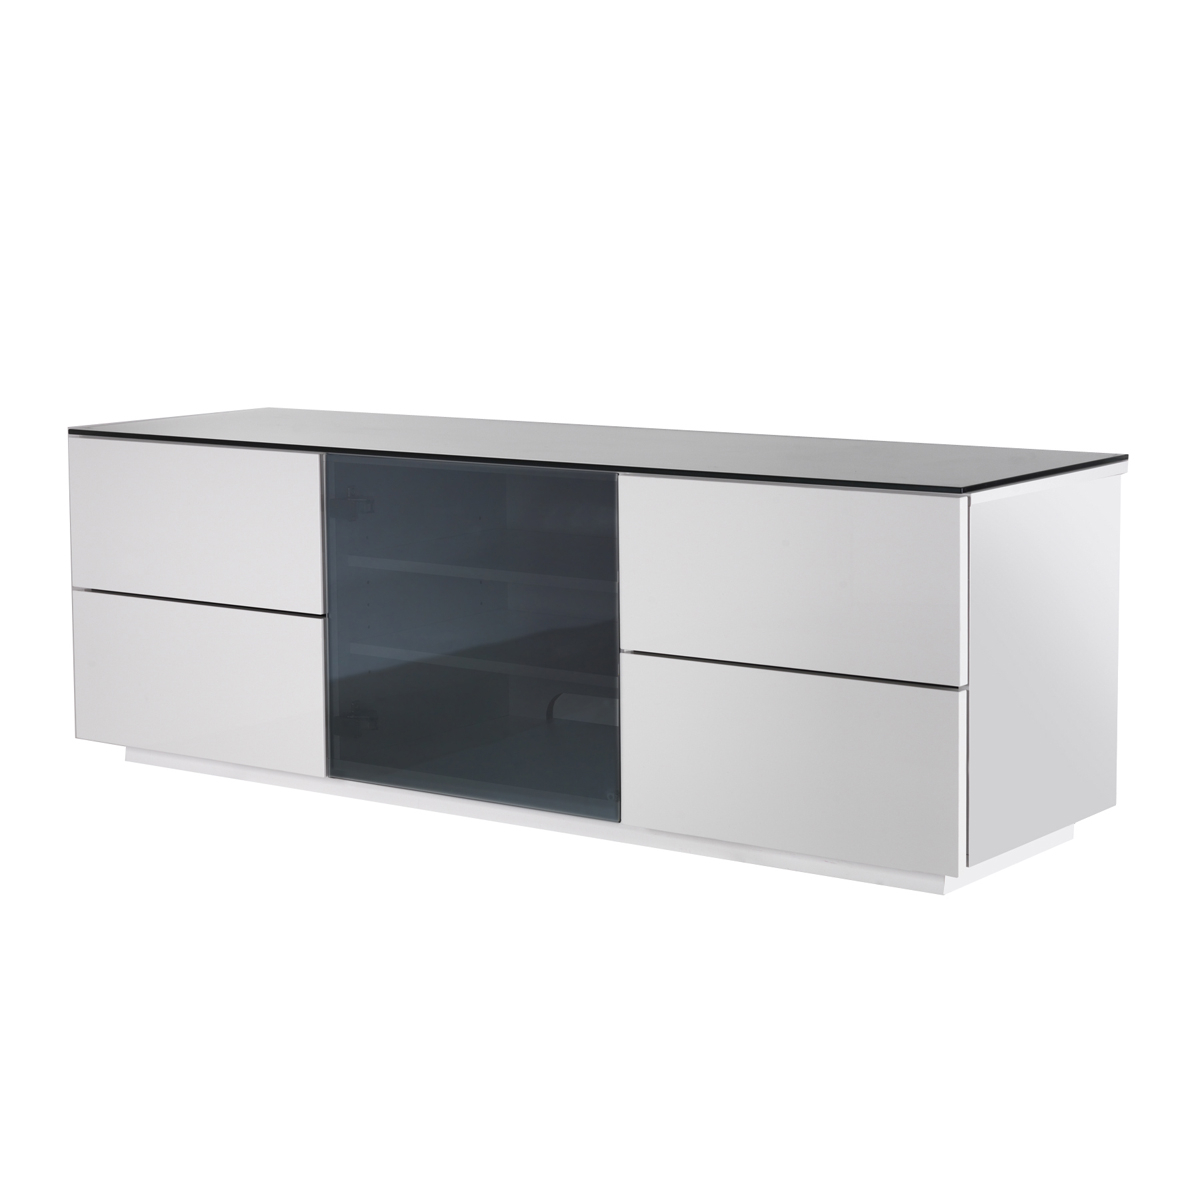 Well Known Ikea Tv Stand Hack Modern Italian Bedroom Set High Gloss Black White Regarding Shiny Black Tv Stands (View 18 of 20)